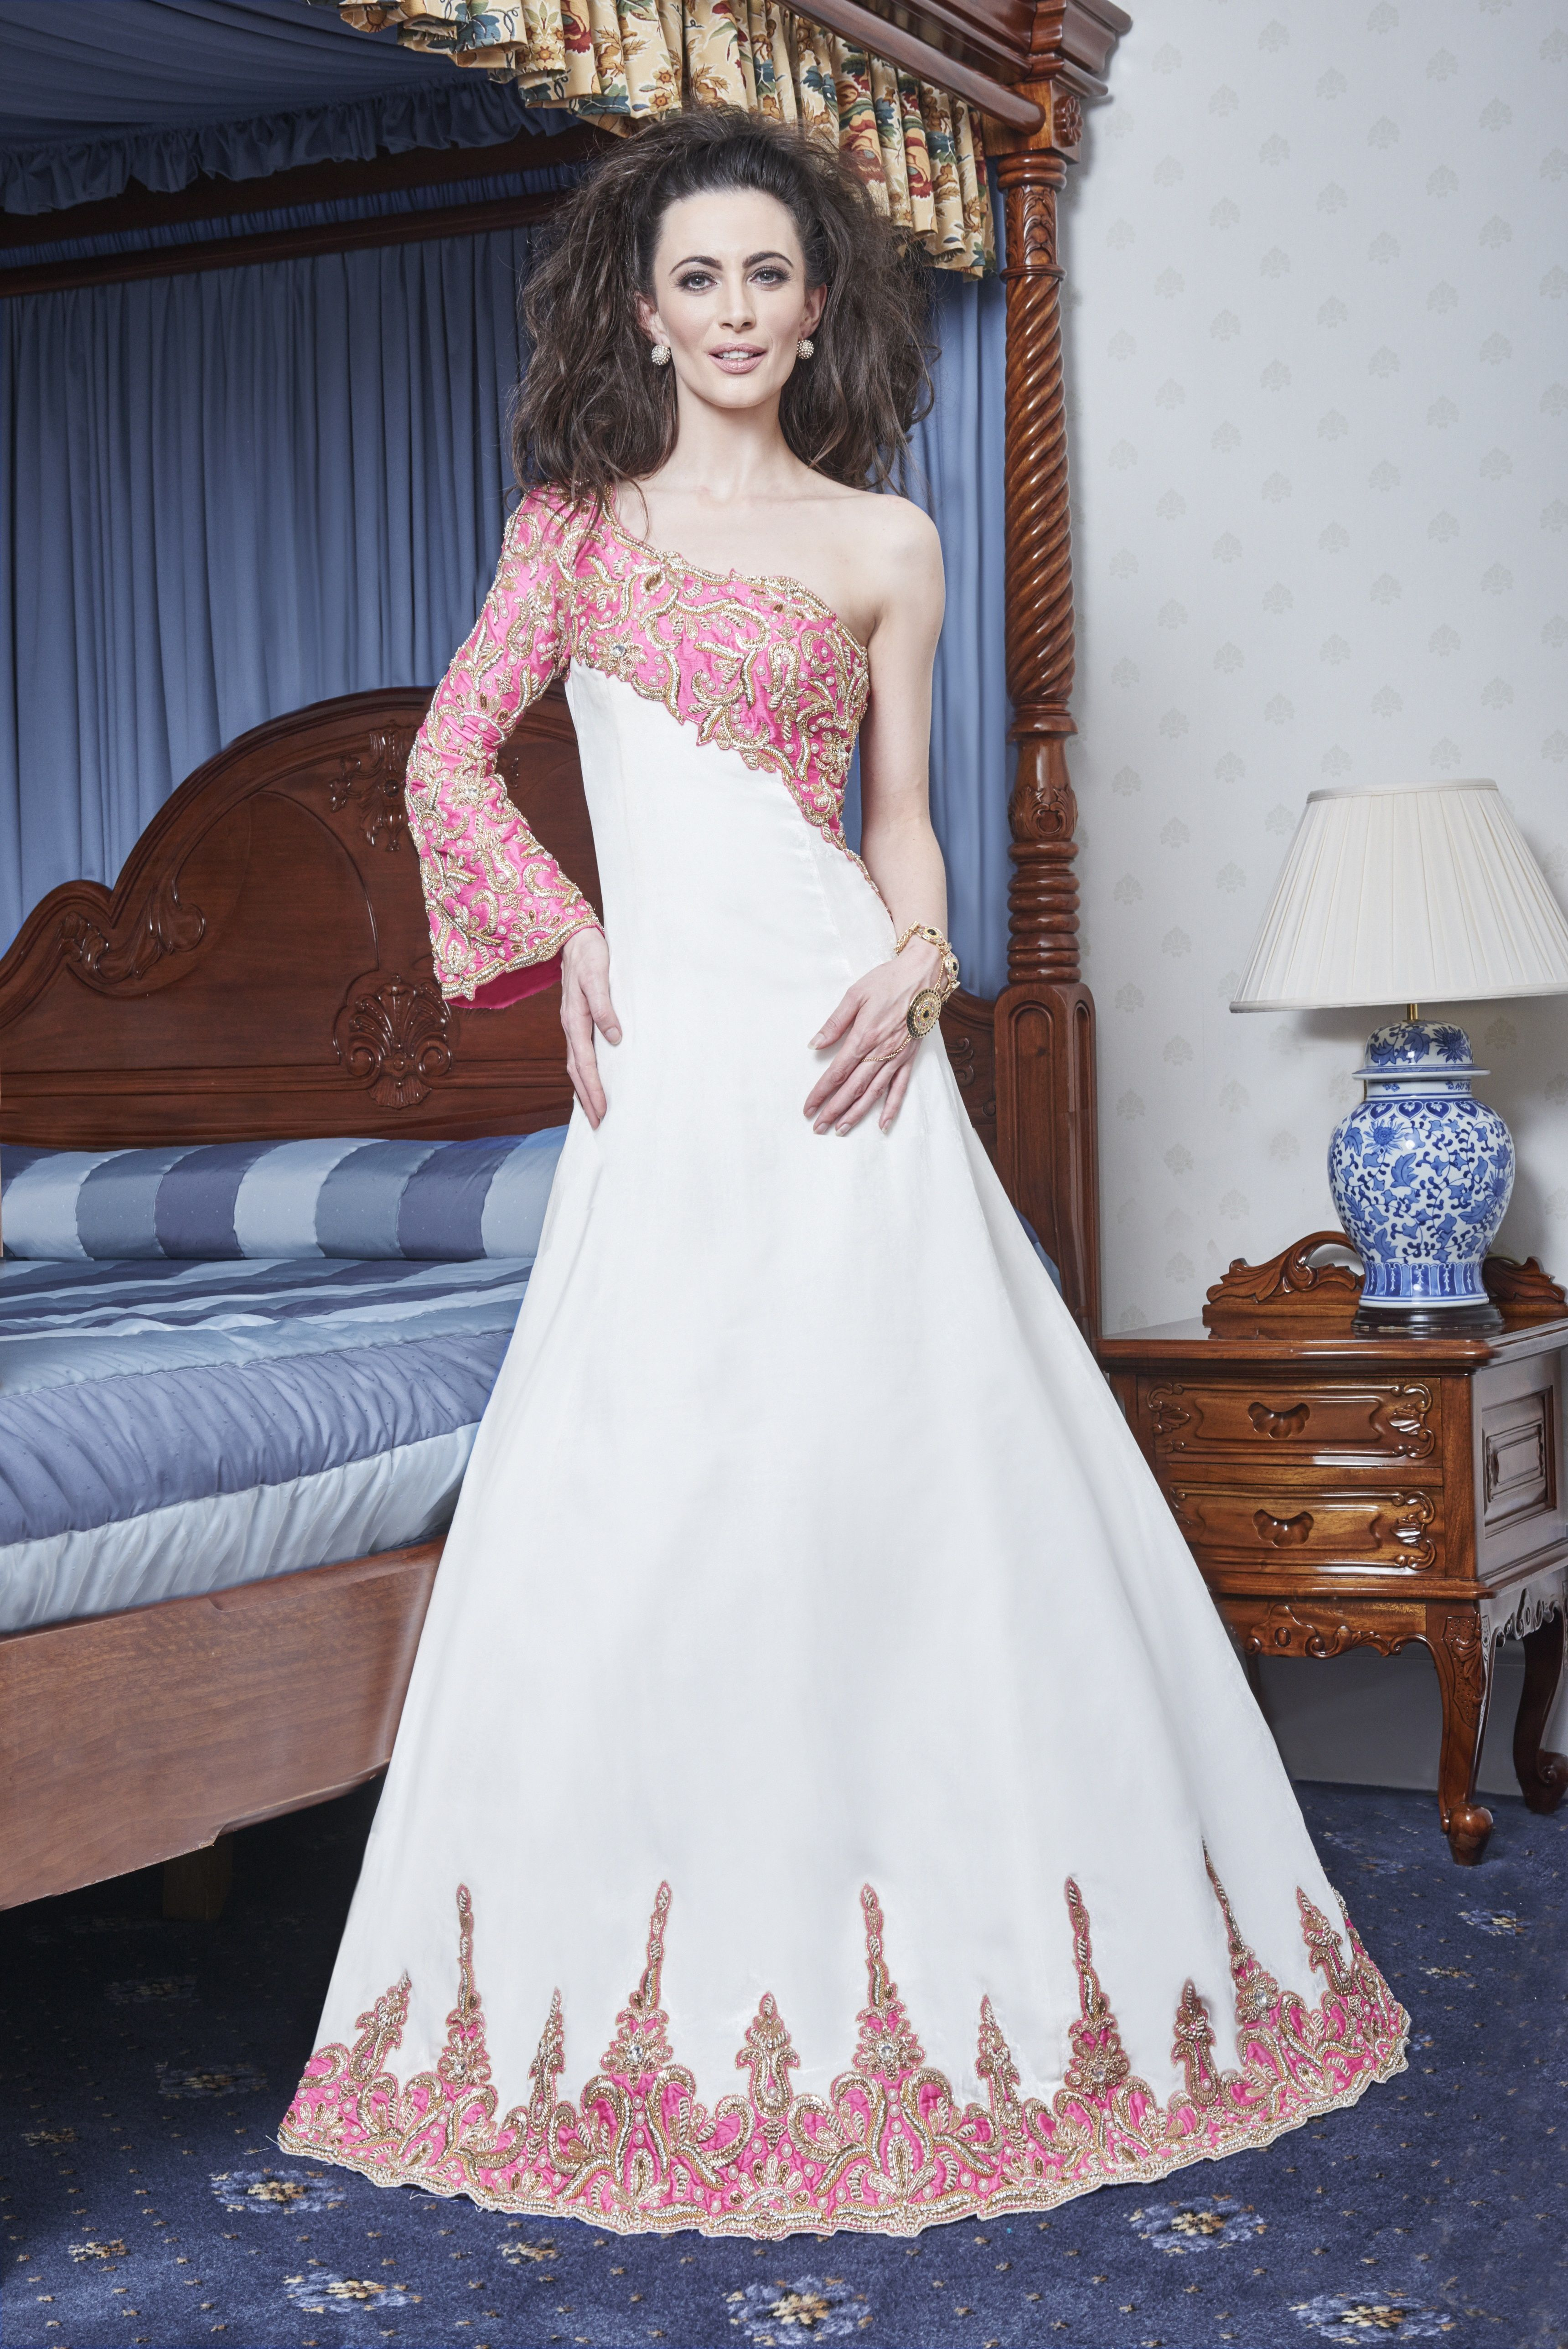 We08 Off White Velvet A Line Fusion Gown With A Quirky Asymmetrical One Sleeve Style In Pink Raw Silk Ball Gowns Gowns Bridal Gowns [ 5152 x 3439 Pixel ]